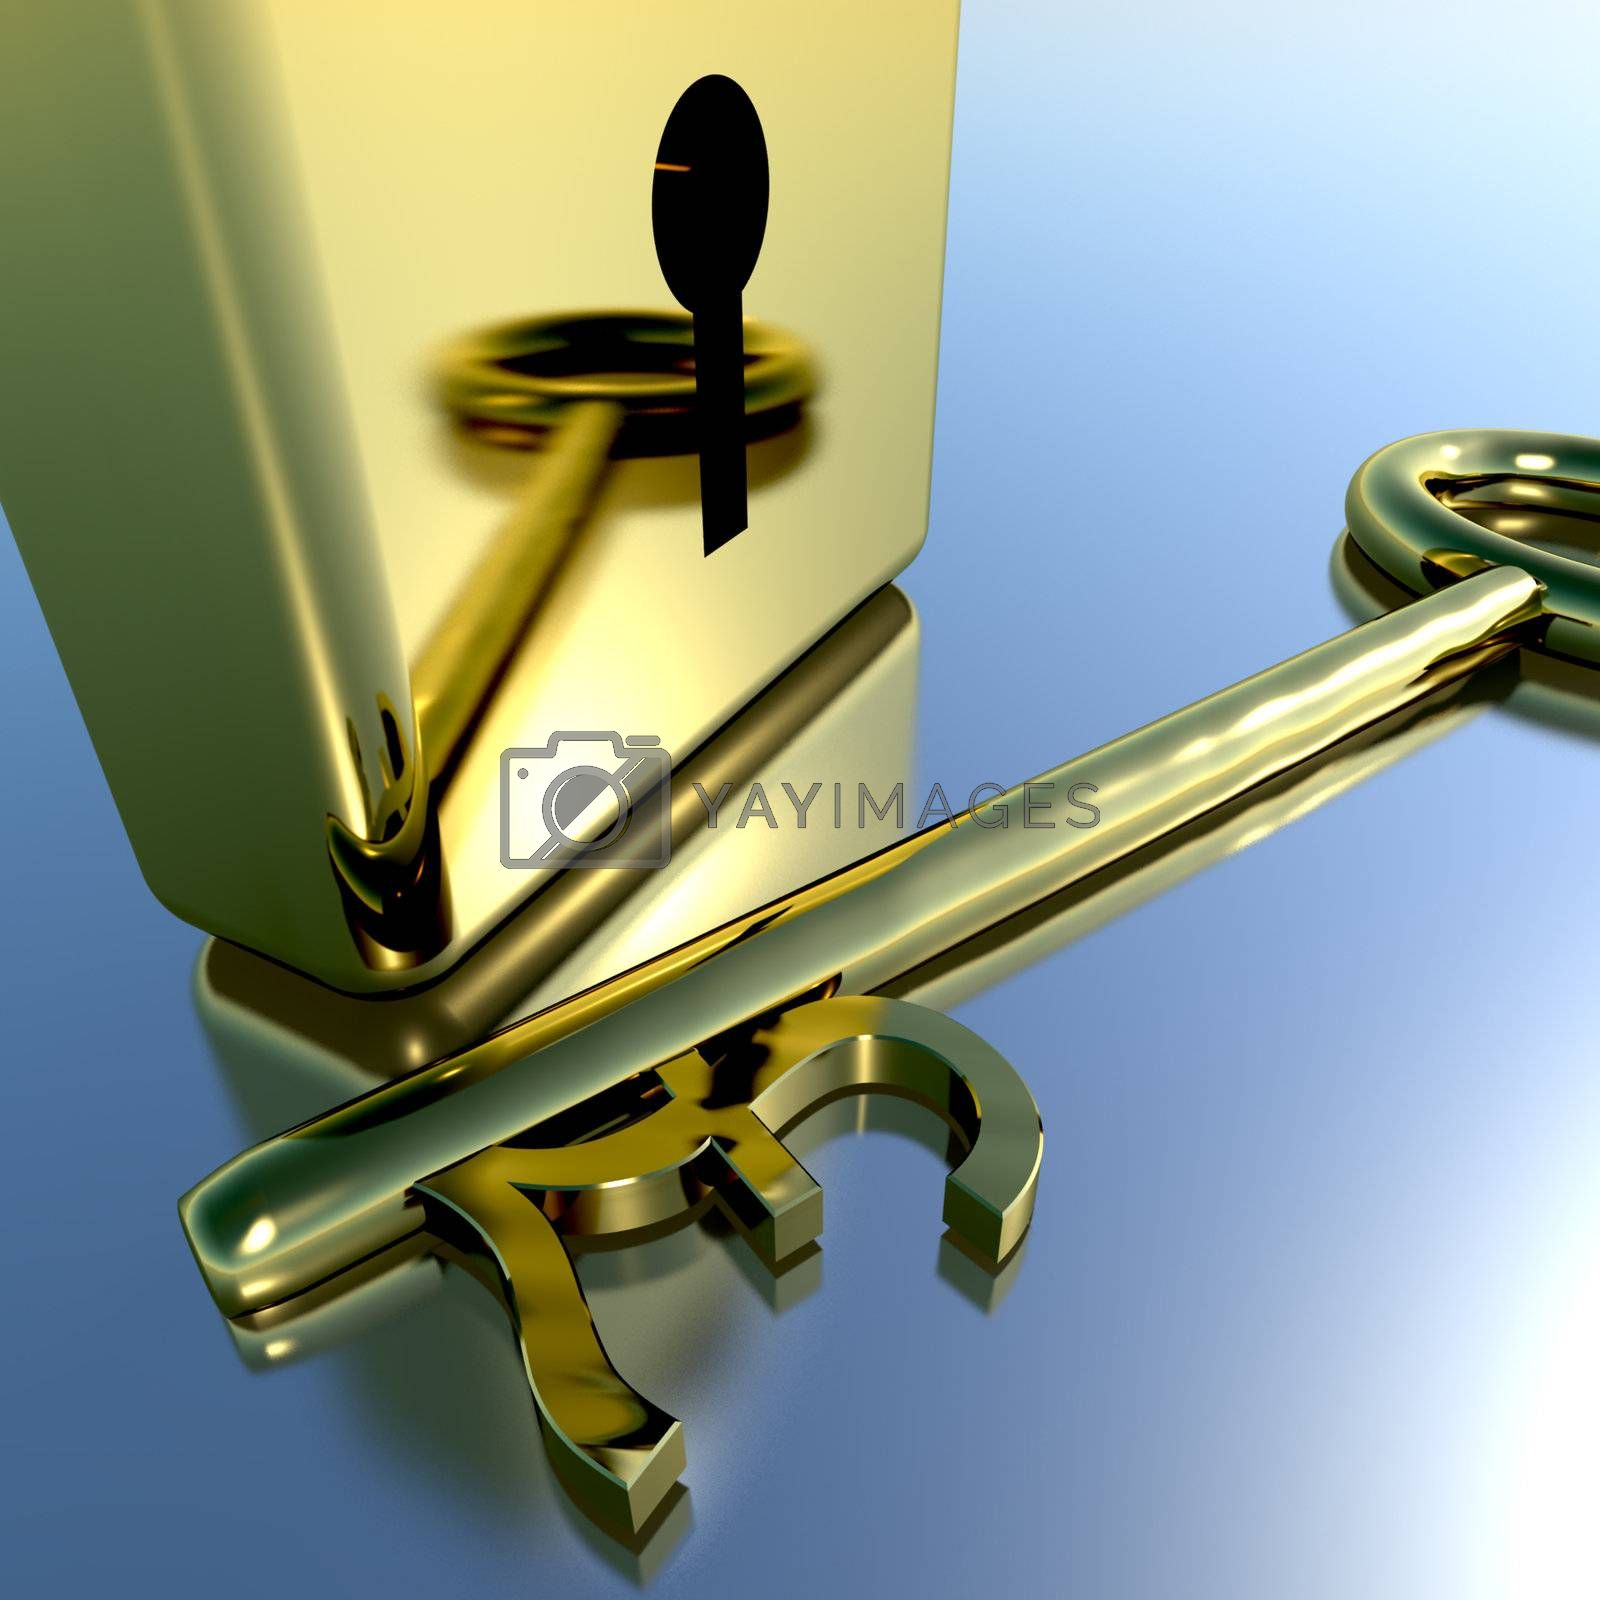 Pound Key With Gold Padlock Showing Banking Savings And Finances